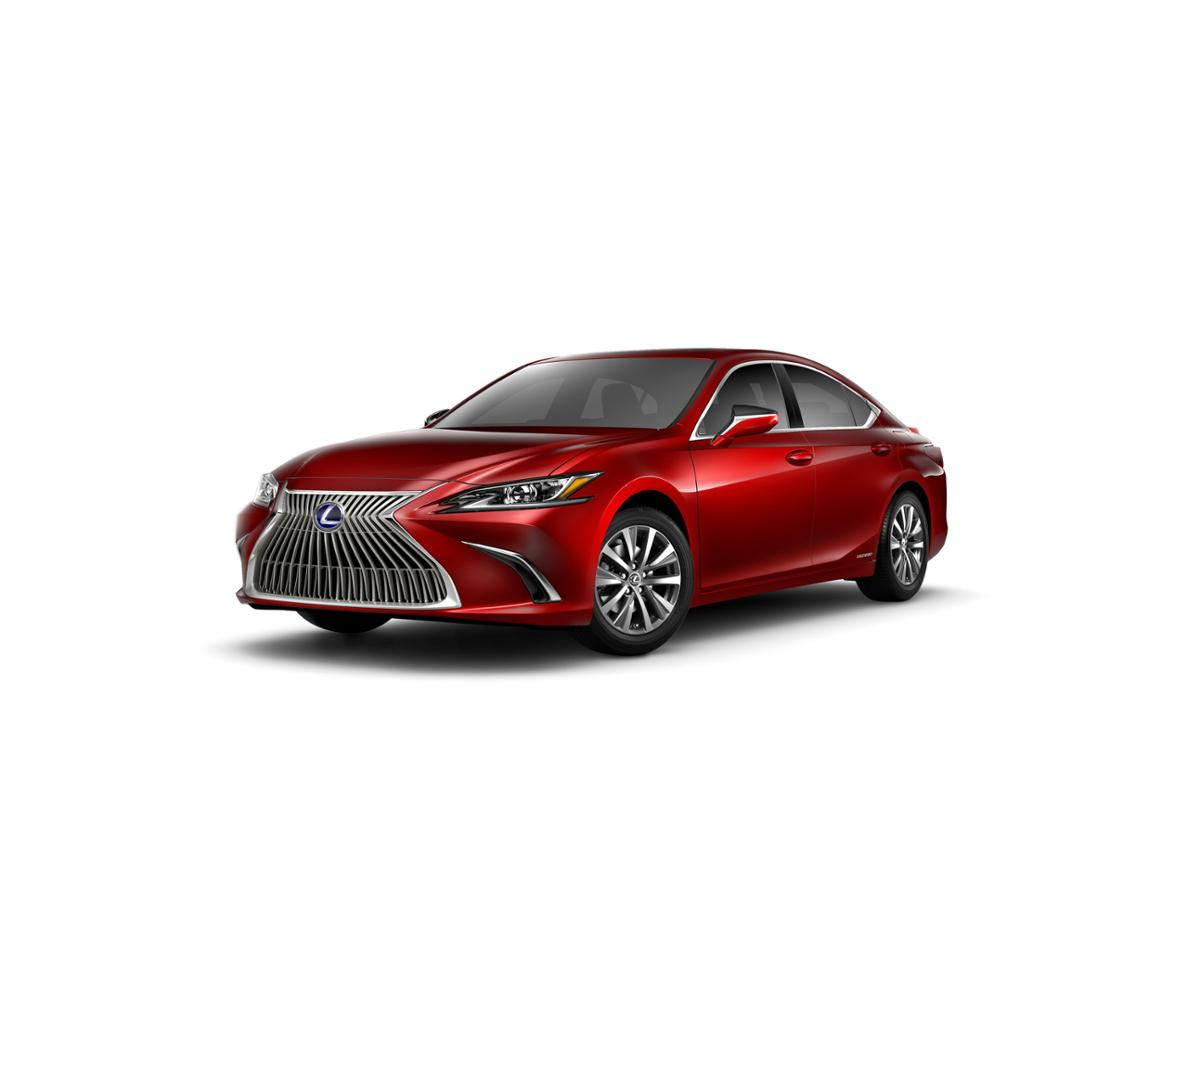 2019 Lexus ES 300h Vehicle Photo in Larchmont, NY 10538